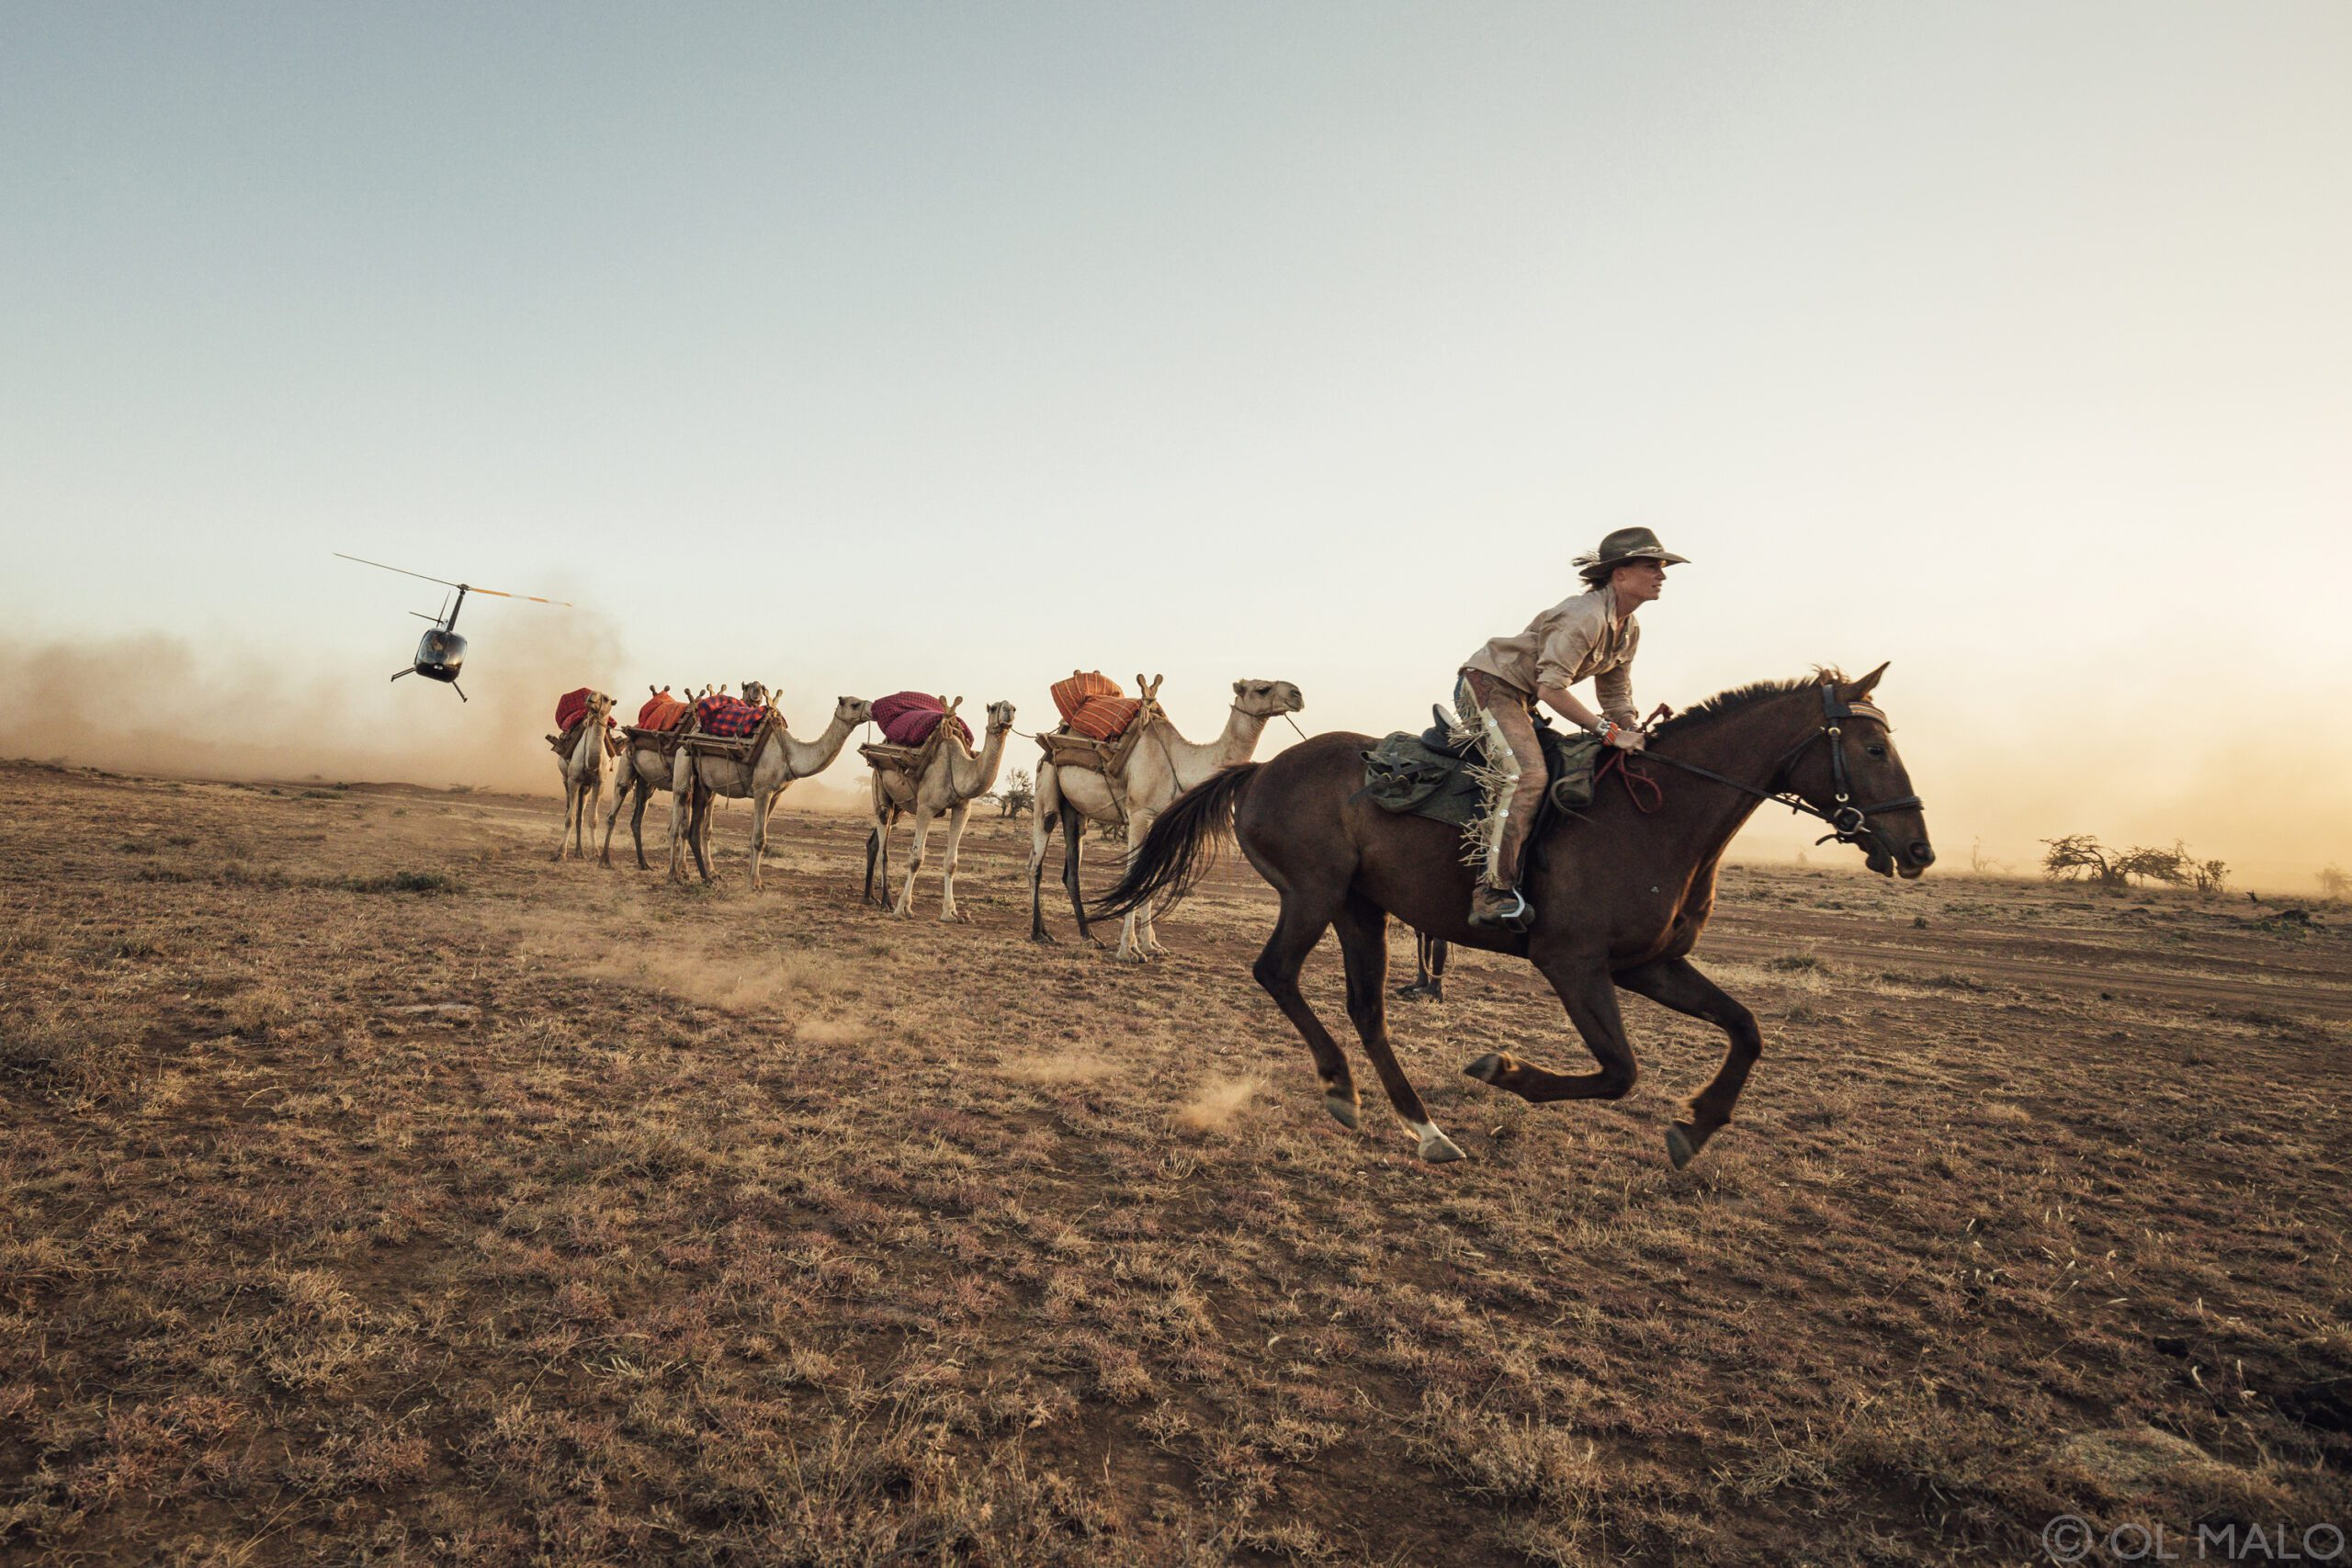 riders on horseback running across an open dirt field with a helicopter in the distance